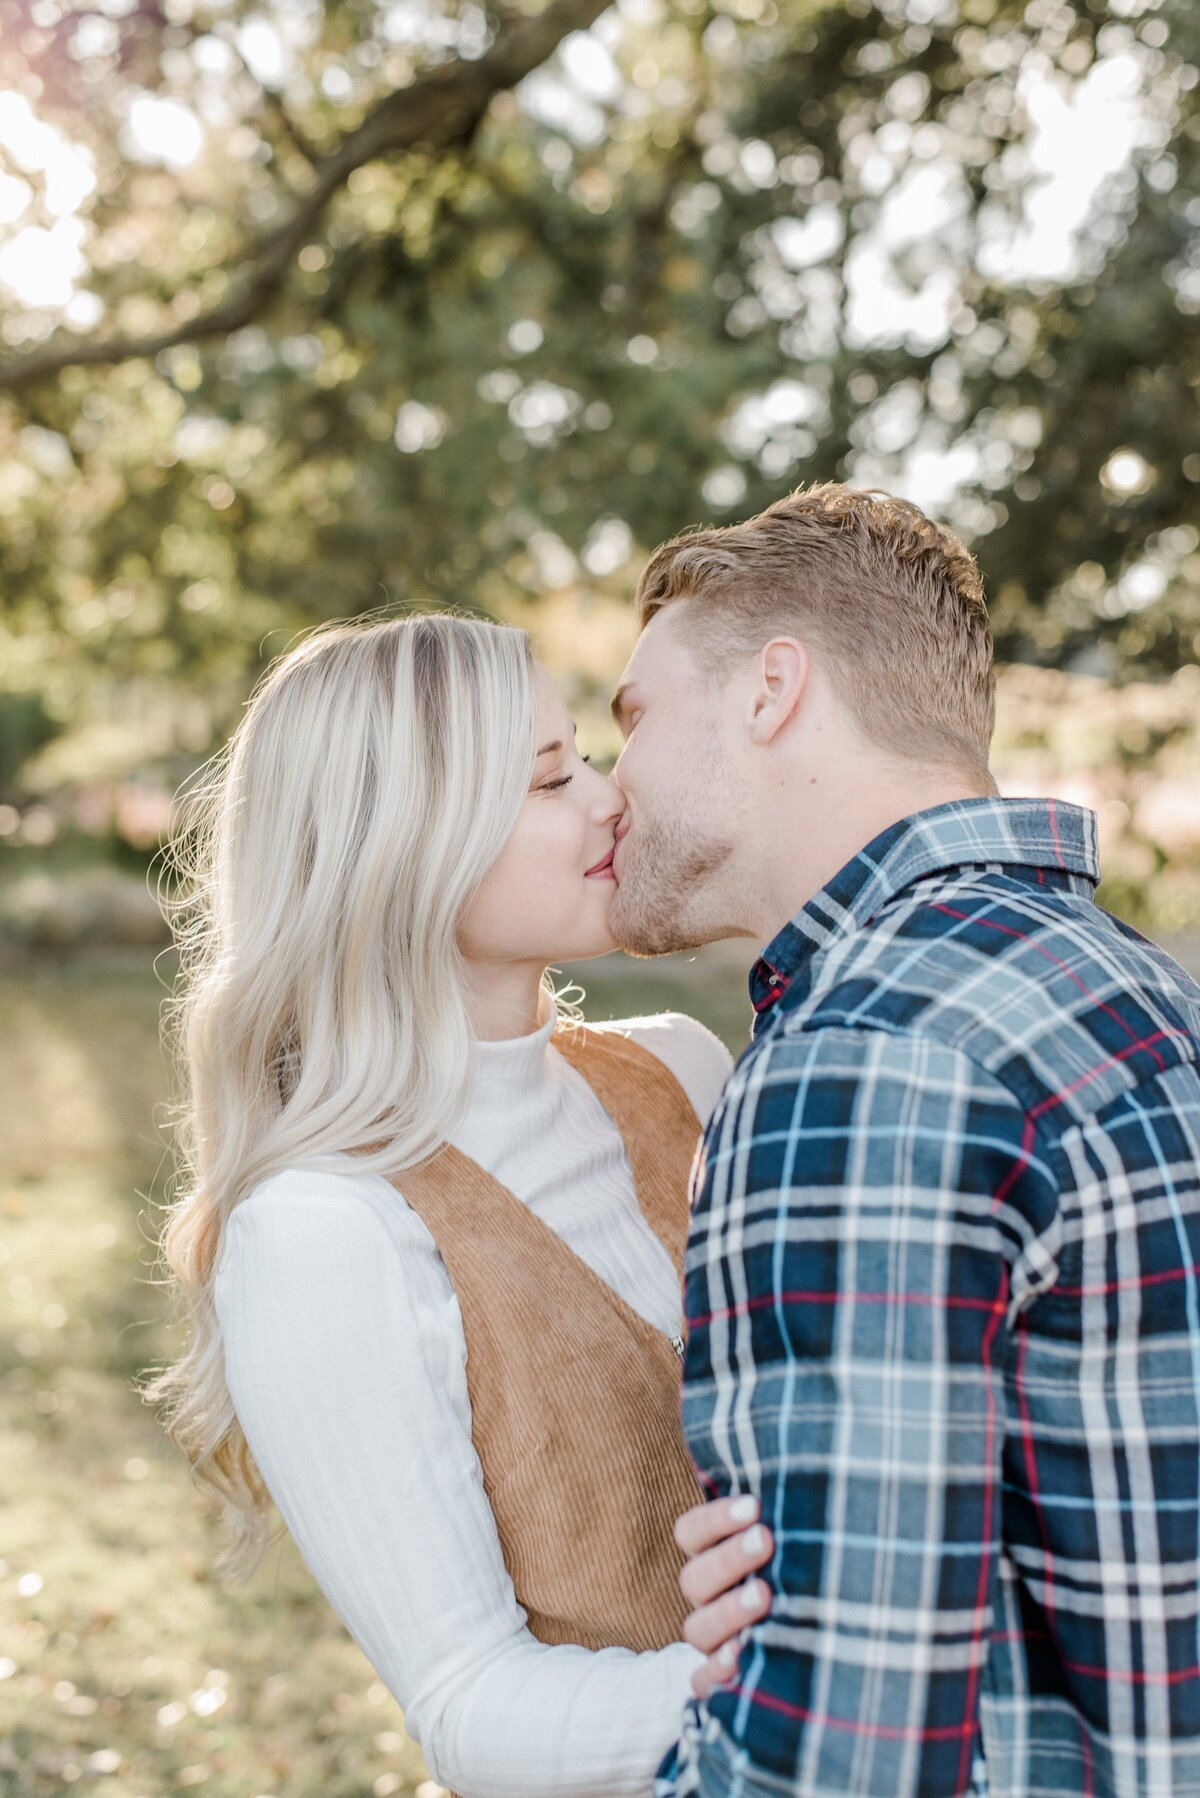 Engagement photographer Texas | Patti Darby Photography 25